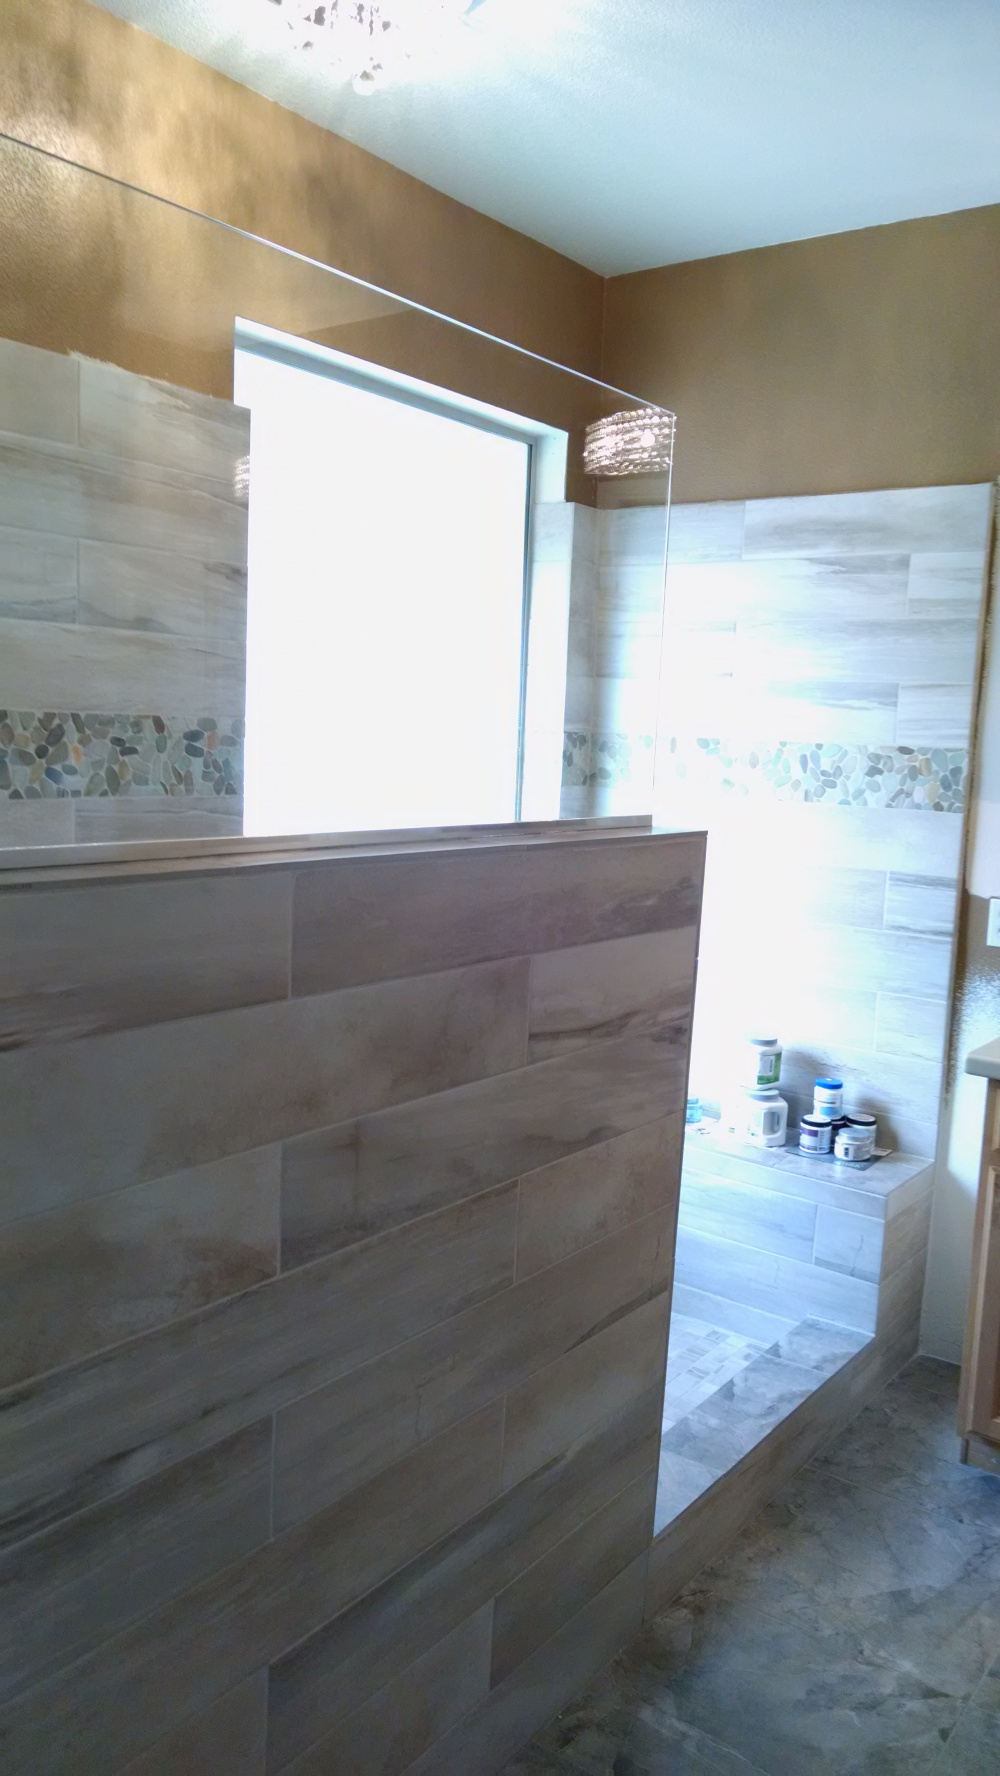 Phoenix Bathroom Remodel Interesting Home Remodeling Phoenix  Champion Remodeling Llc. 2017